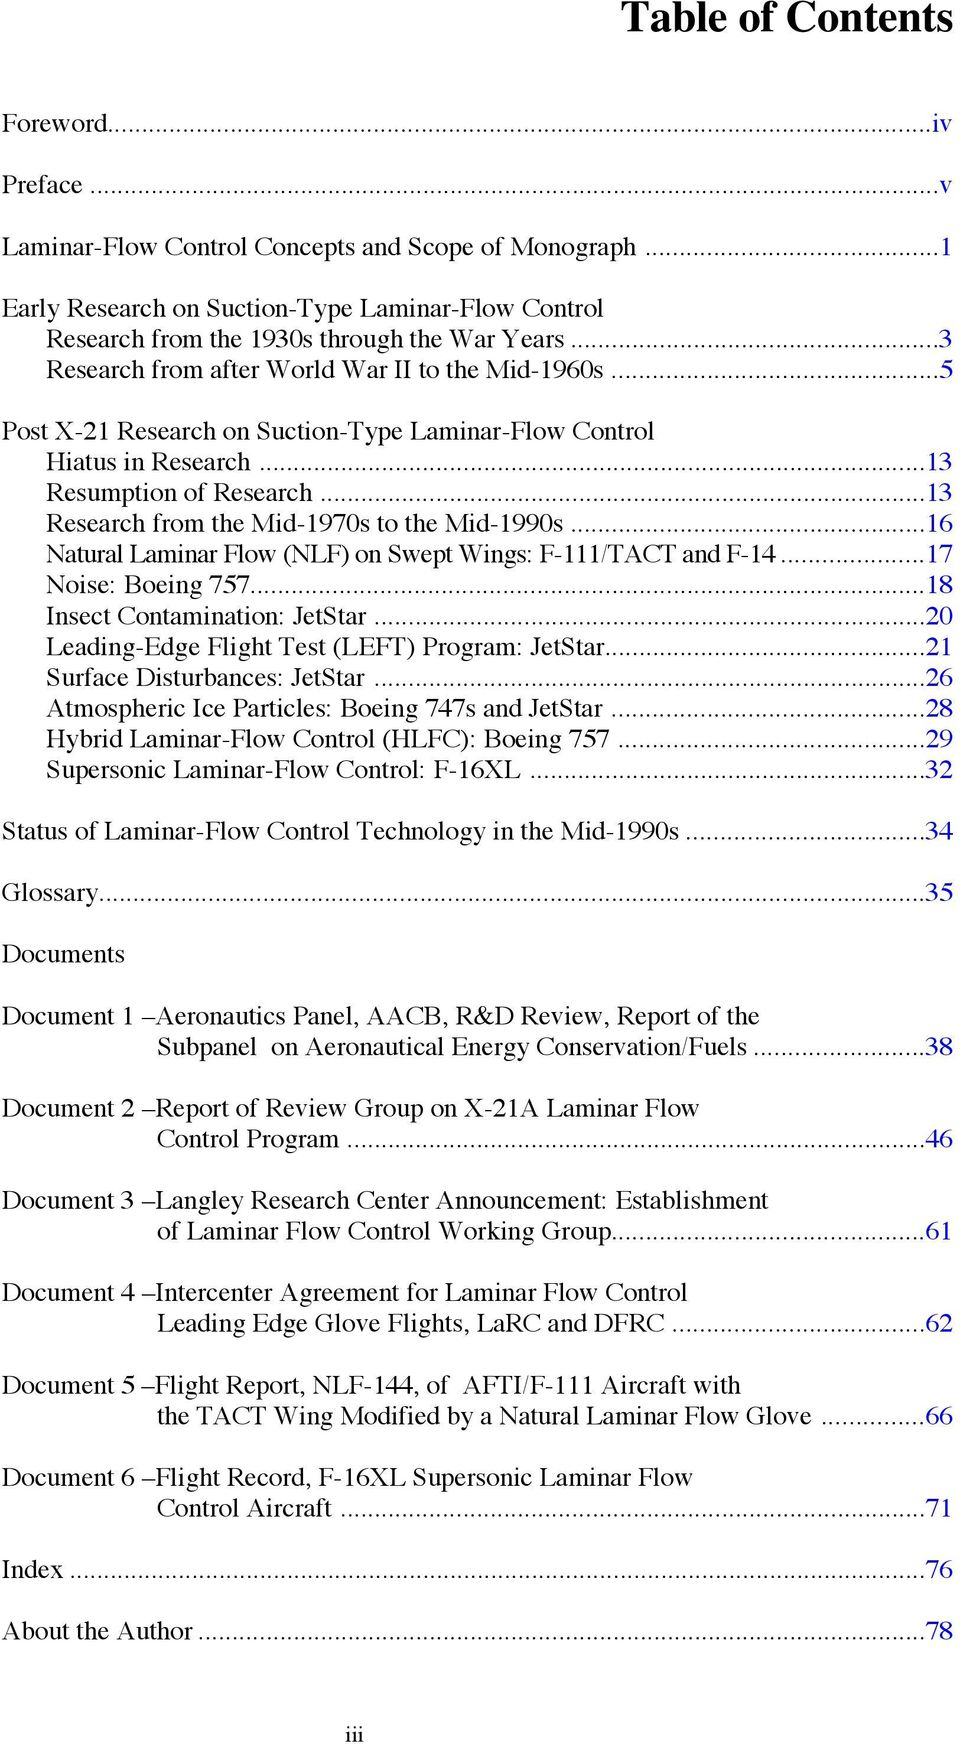 ..13 Research from the Mid-1970s to the Mid-1990s...16 Natural Laminar Flow (NLF) on Swept Wings: F-111/TACT and F-14...17 Noise: Boeing 757...18 Insect Contamination: JetStar.